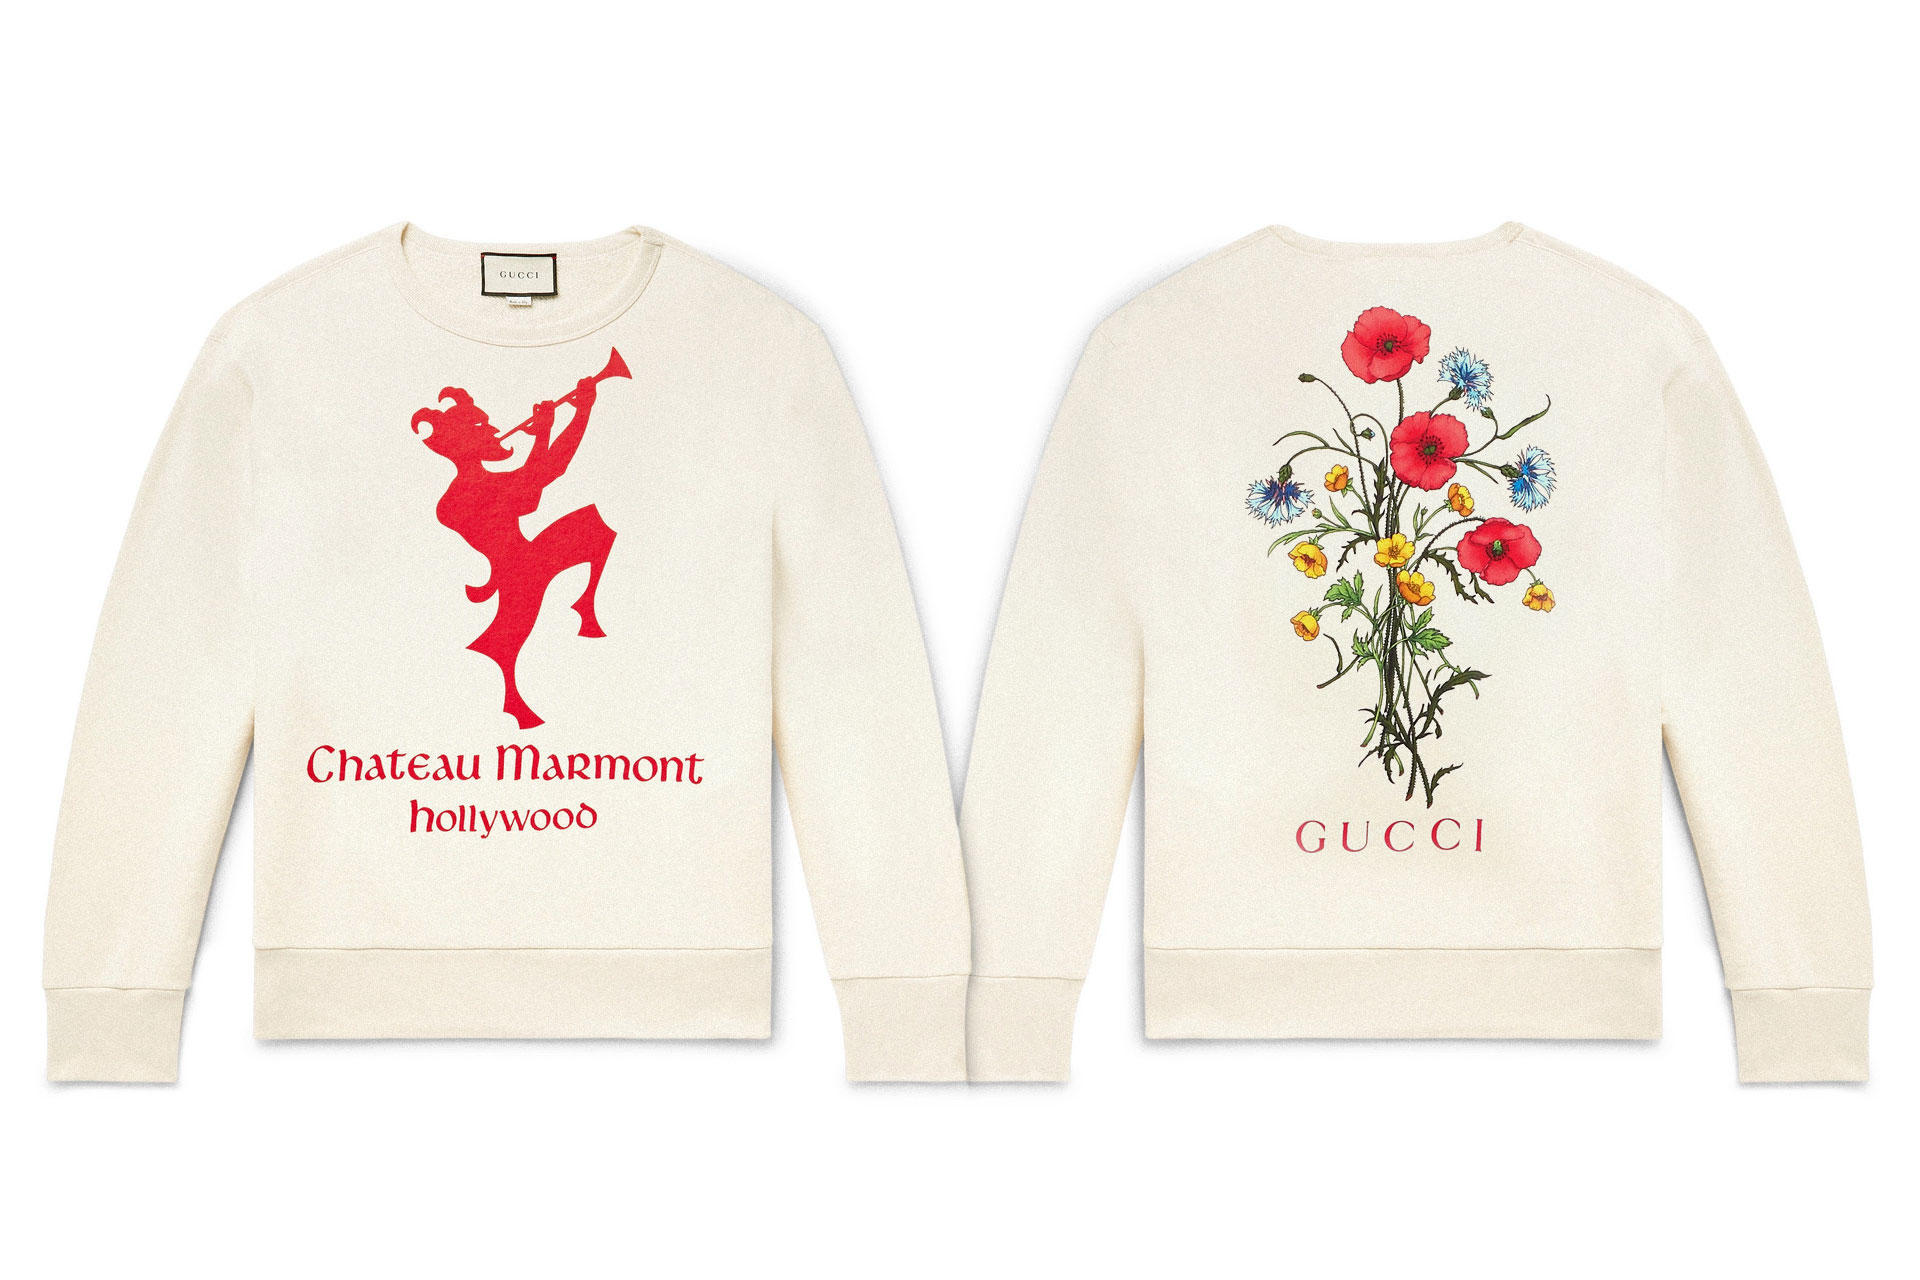 Gucci Chateau Marmont Loopback Sweatshirt printed italy guccy knits tops jumpers winter fashion luxury crewneck made in Italy